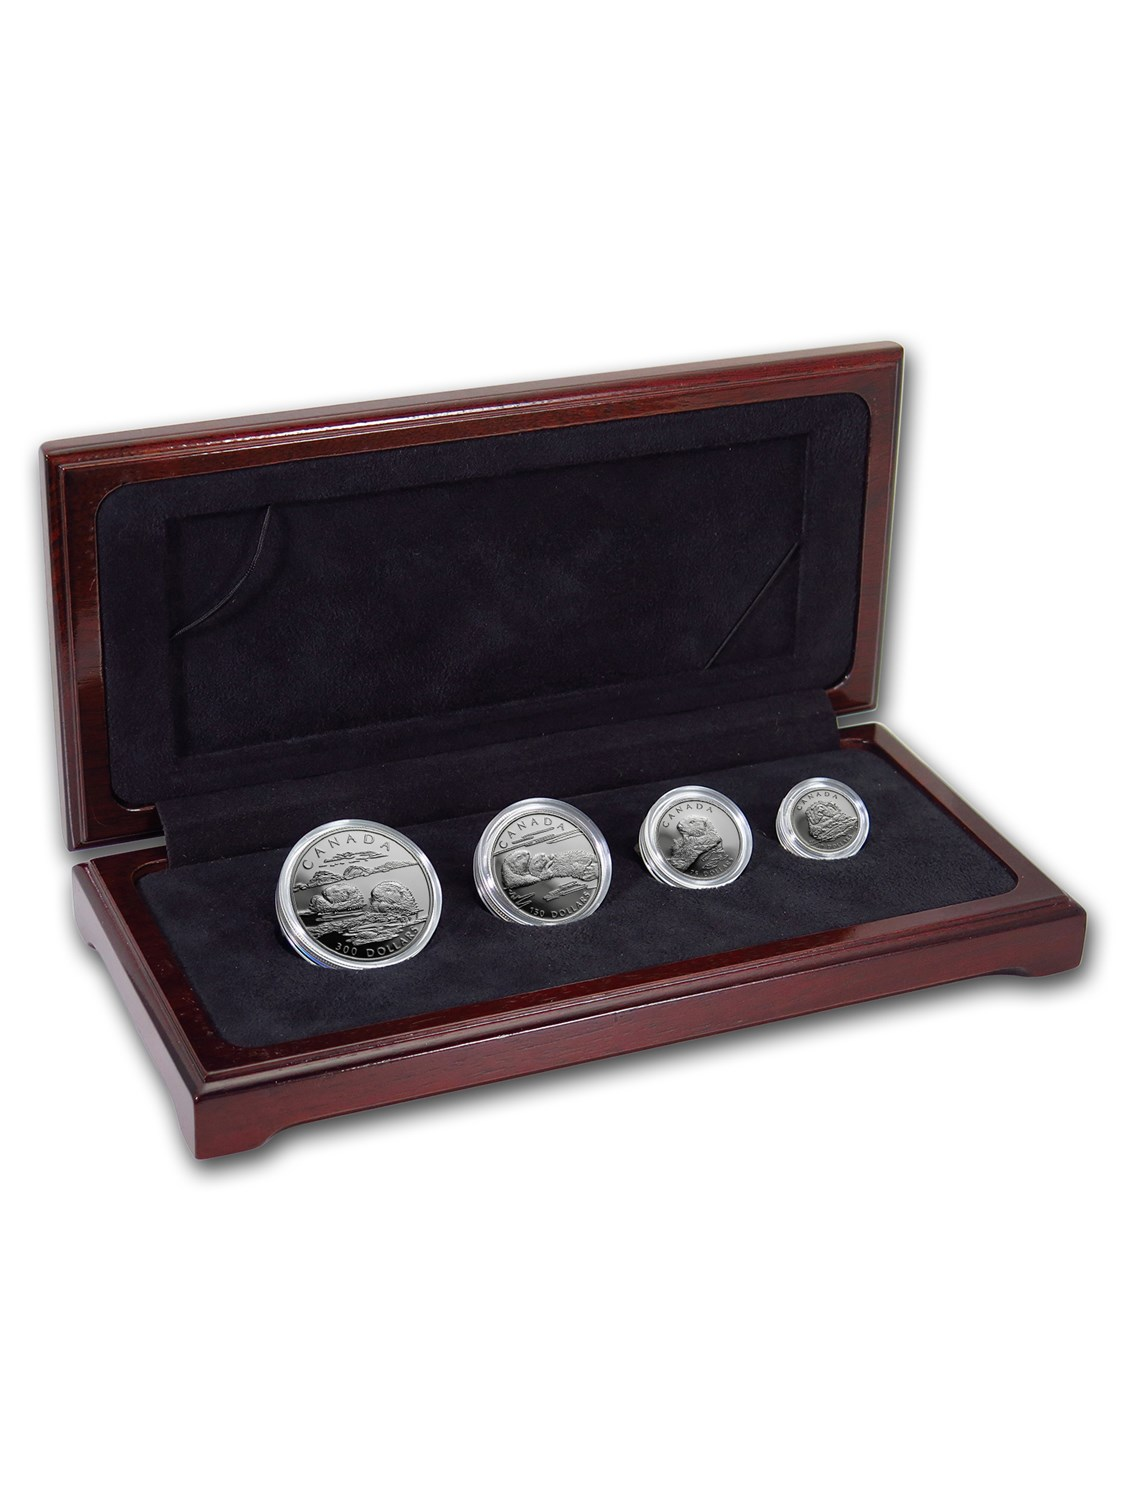 1994 Canada 4-Coin Proof Platinum Sea Otter Set (w Box & COA) by